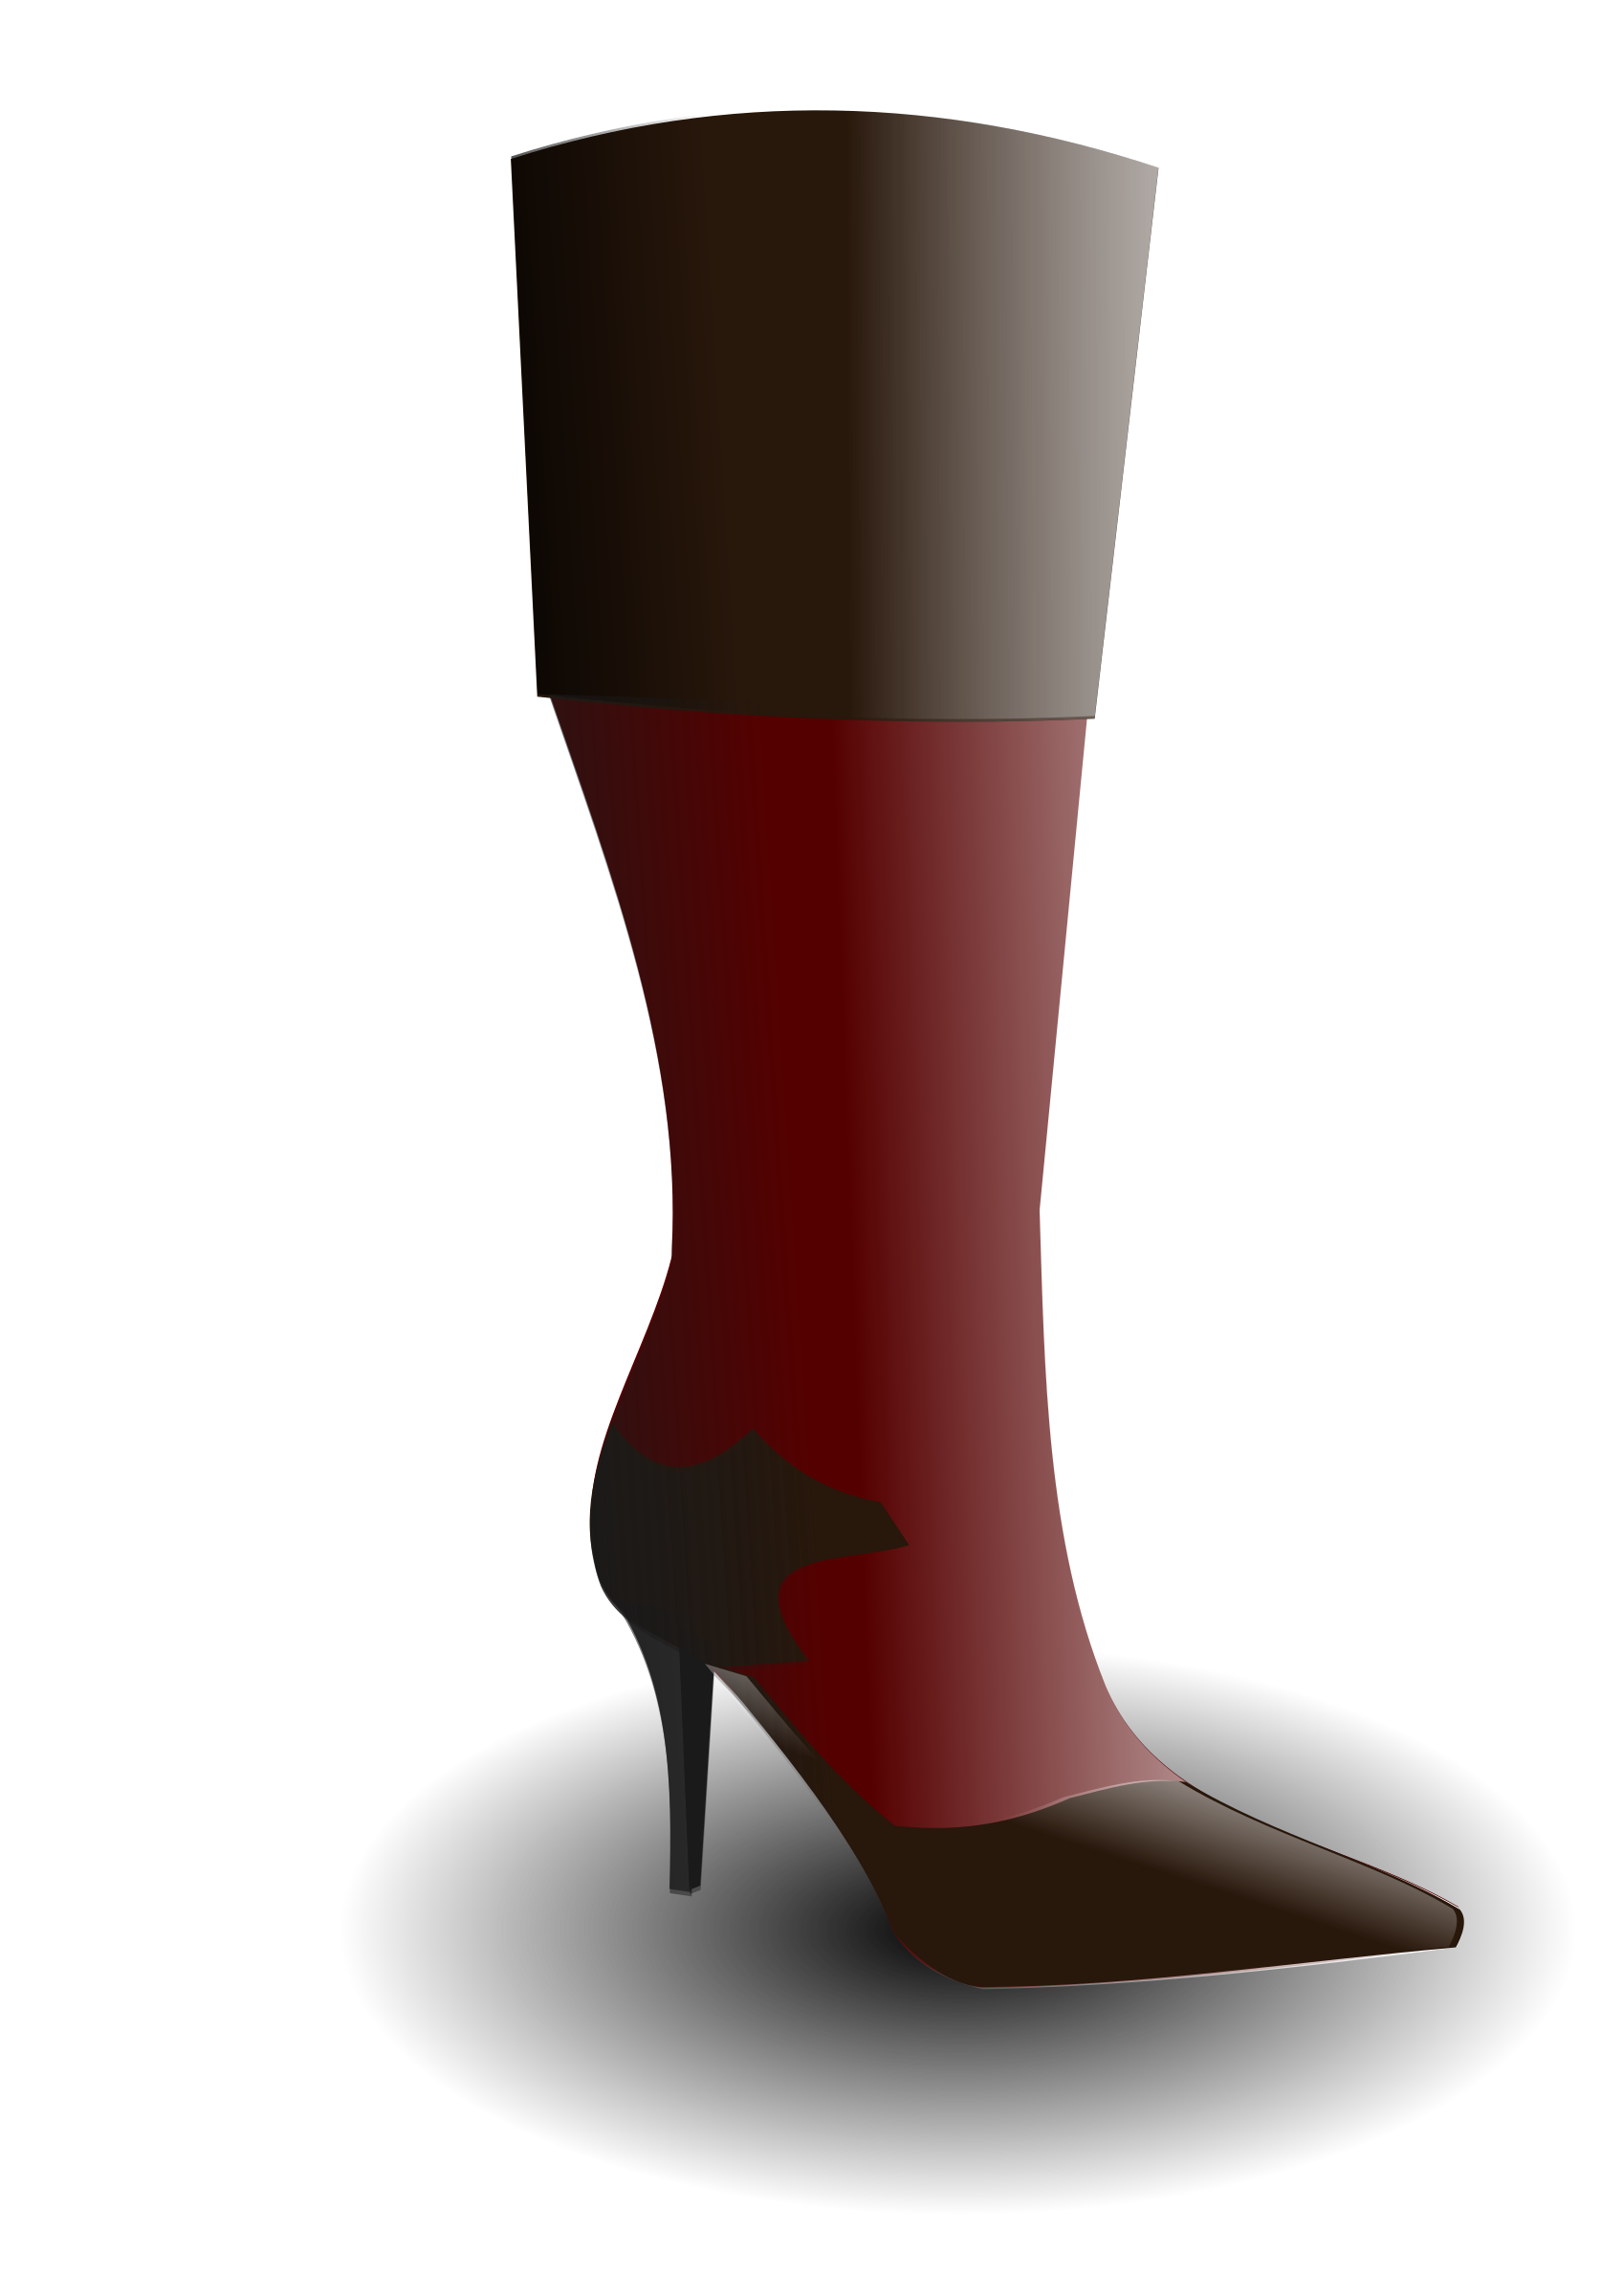 Big image png. Boot clipart high boot